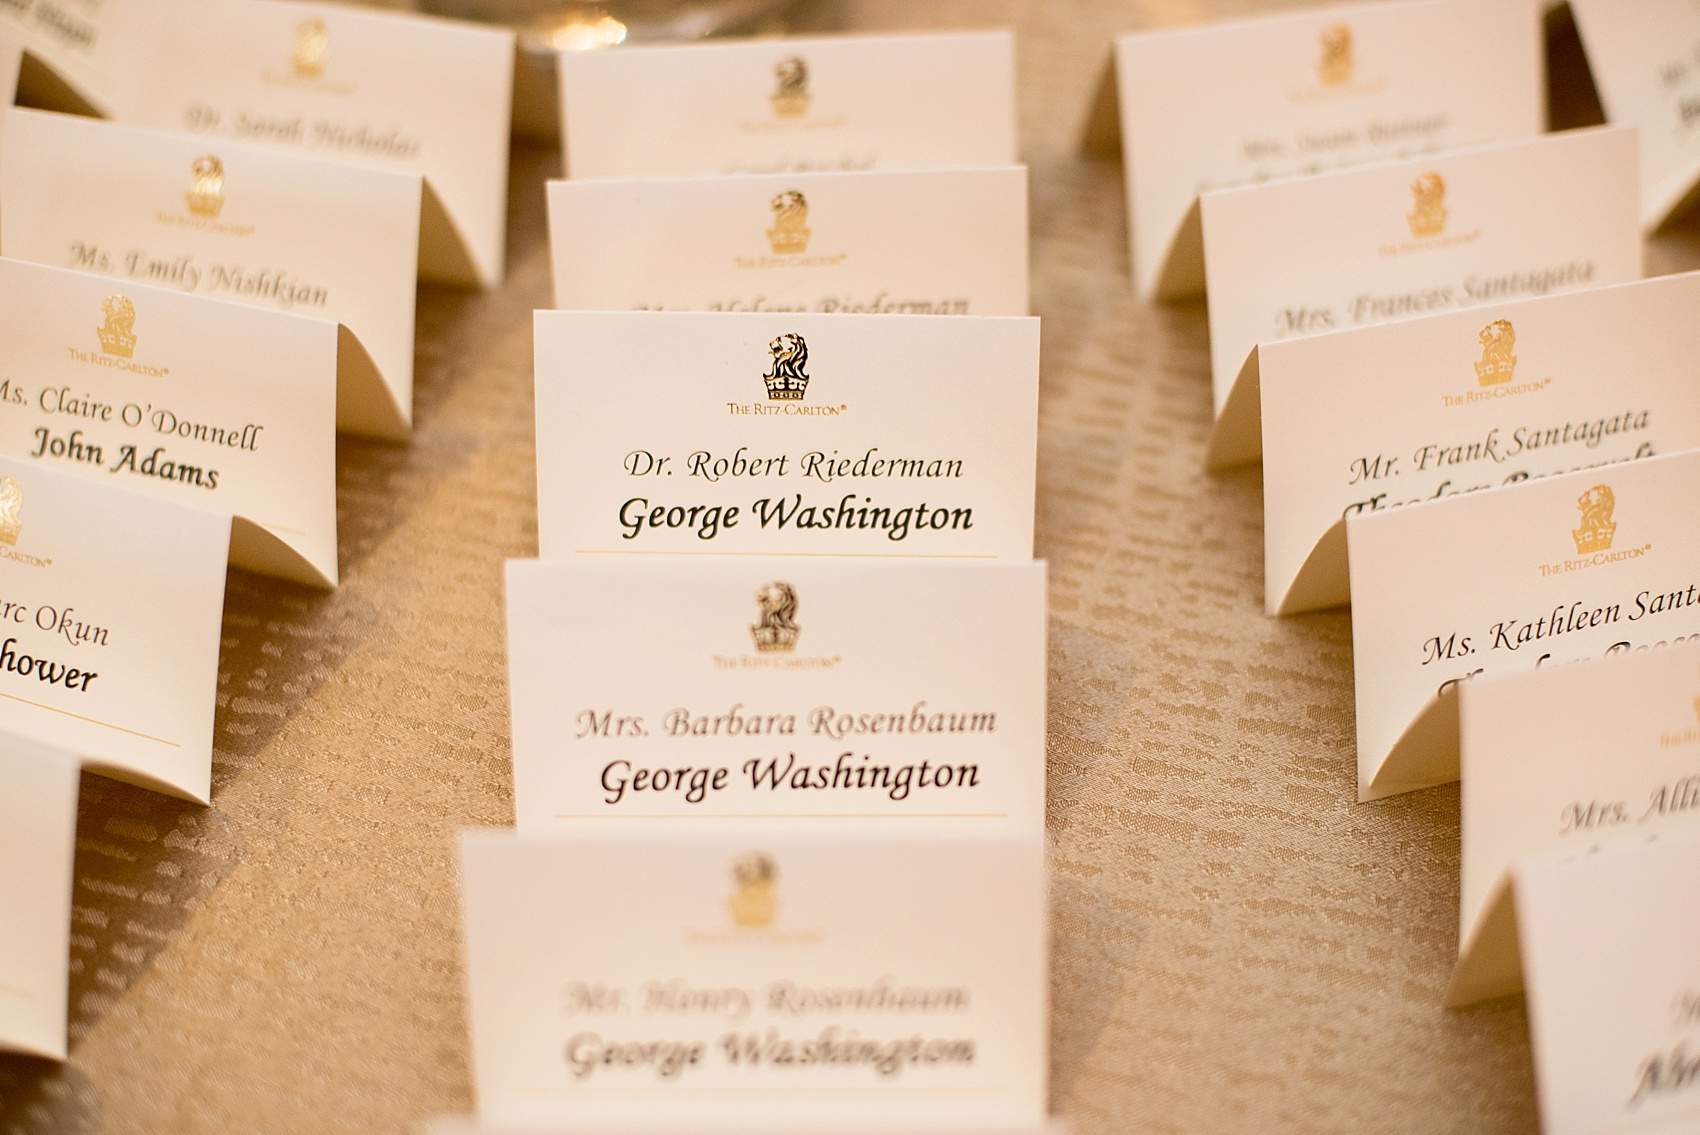 Escort cards were labeled with presidents names